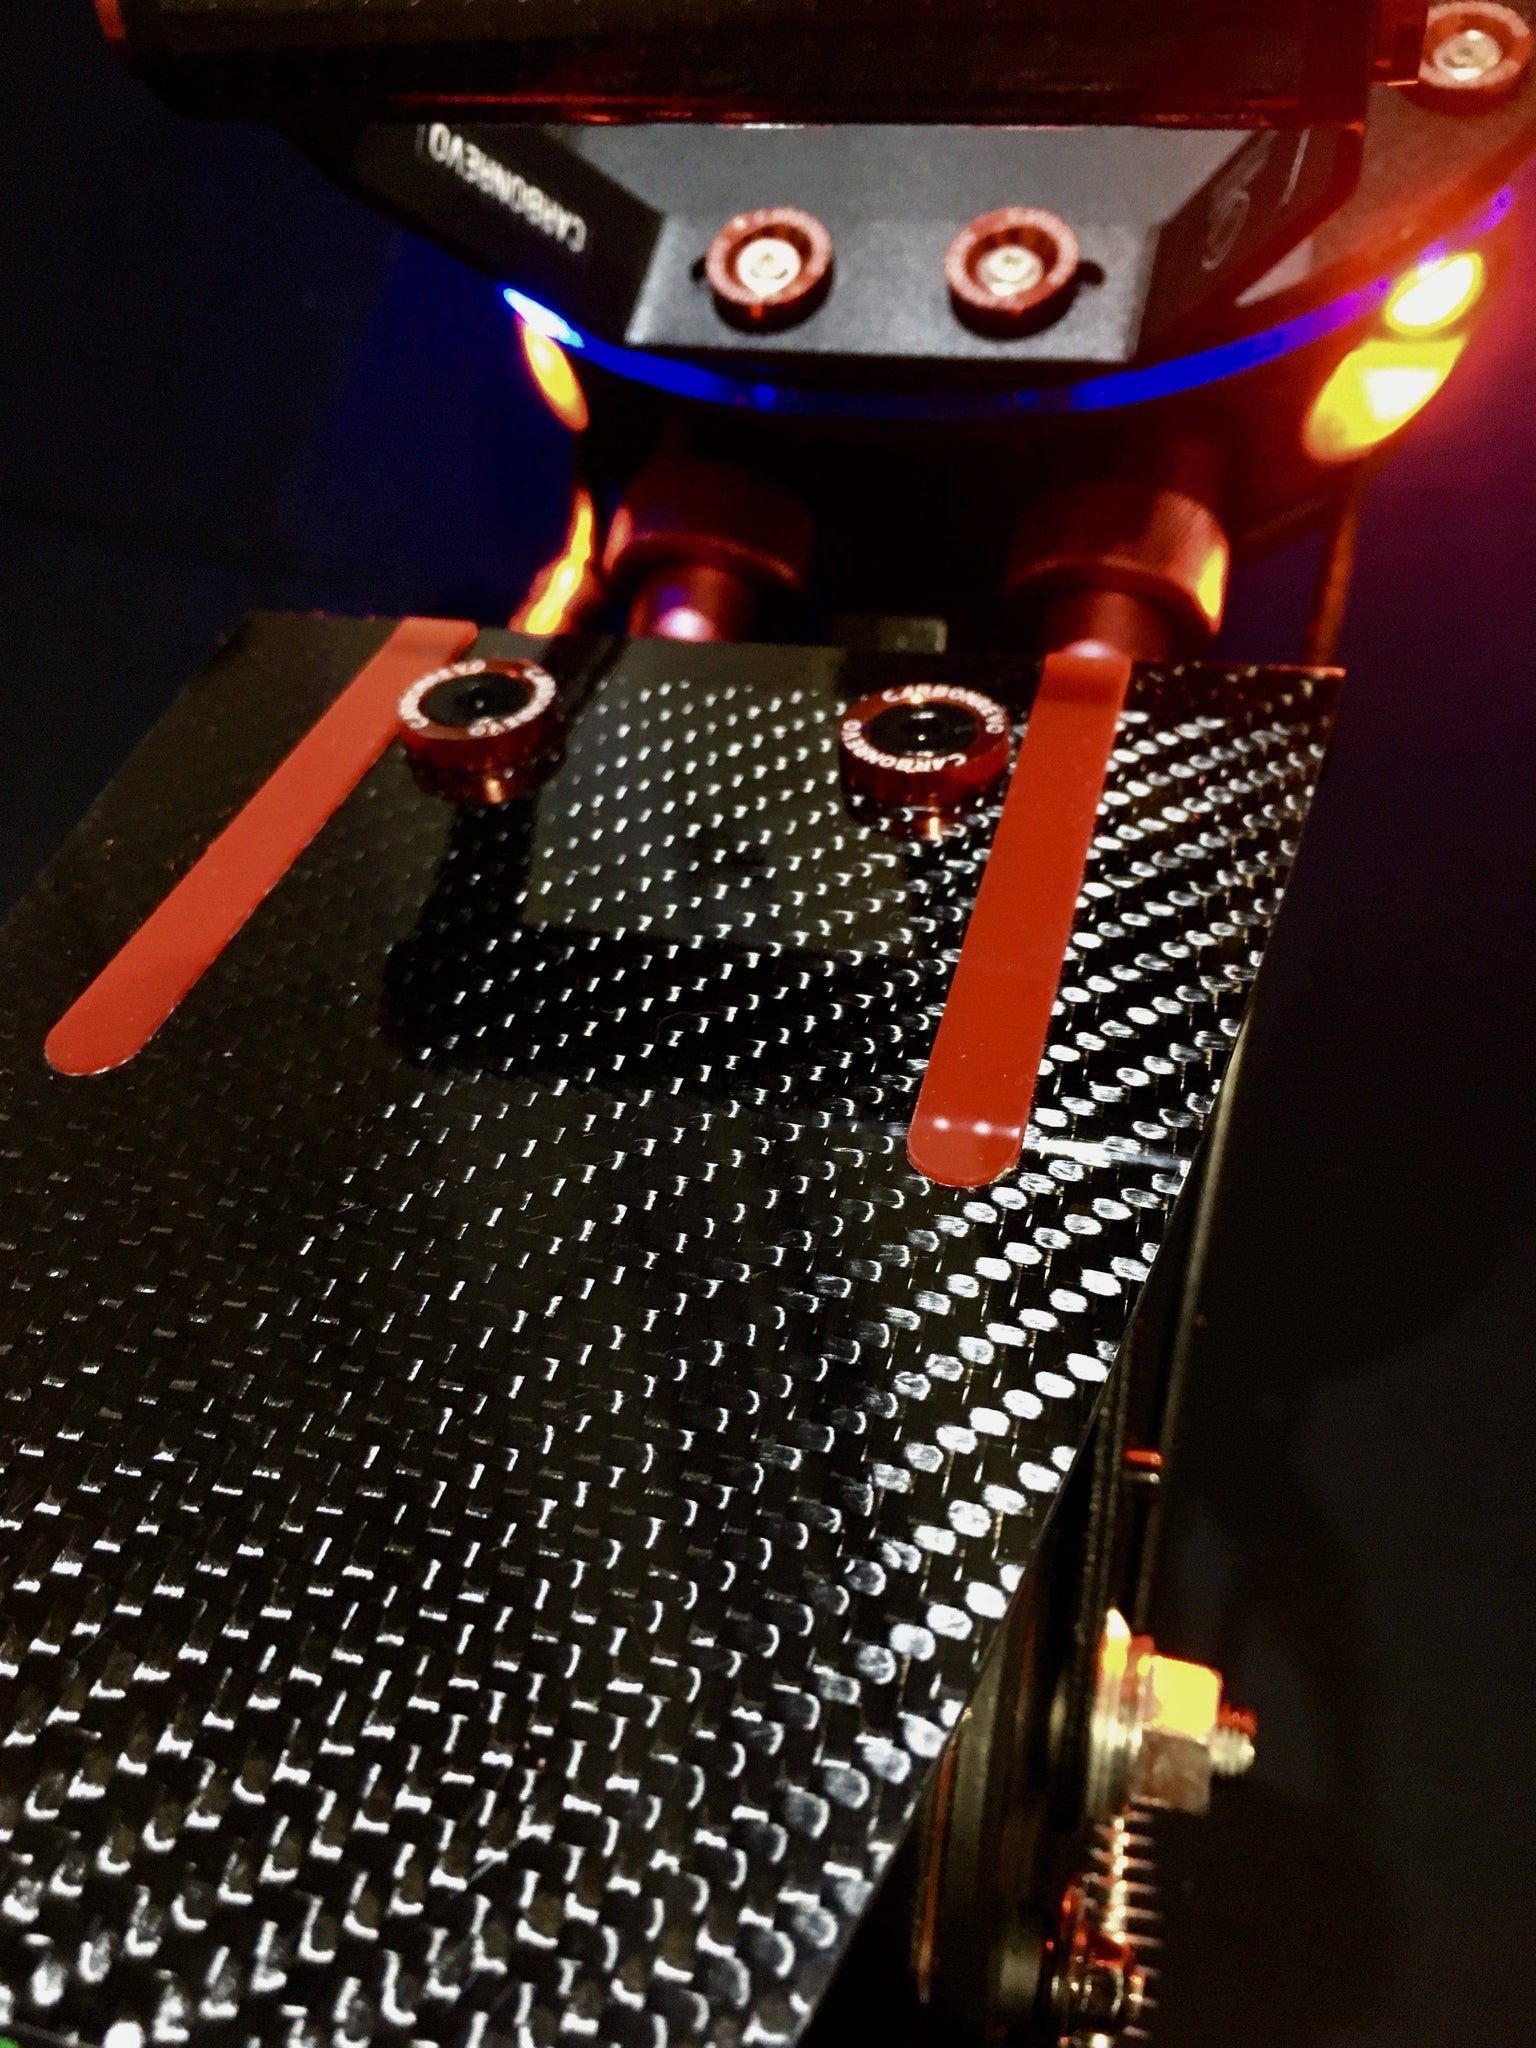 CARBONREVO CARBON FIBRE REAR FENDER close up view